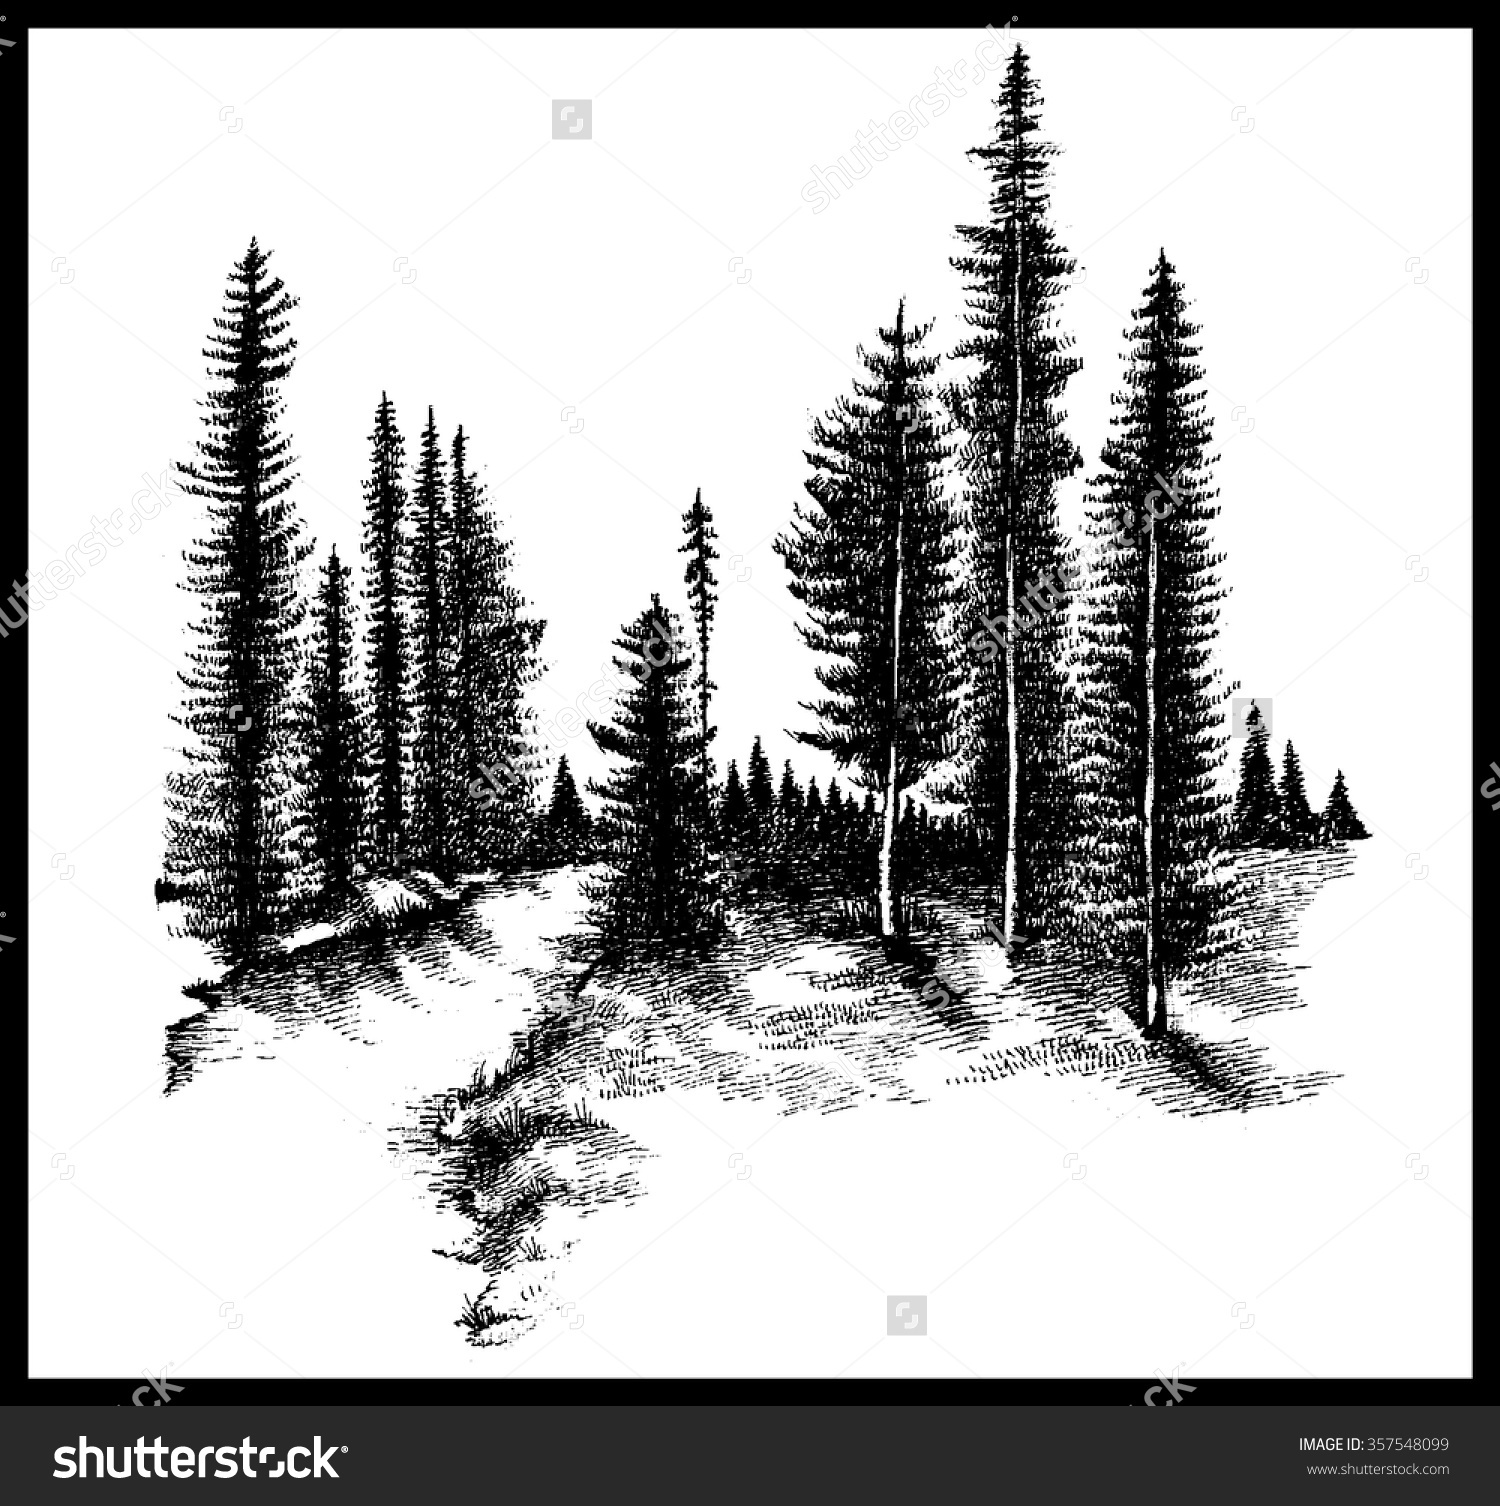 Pine tree mountain clipart black and white.